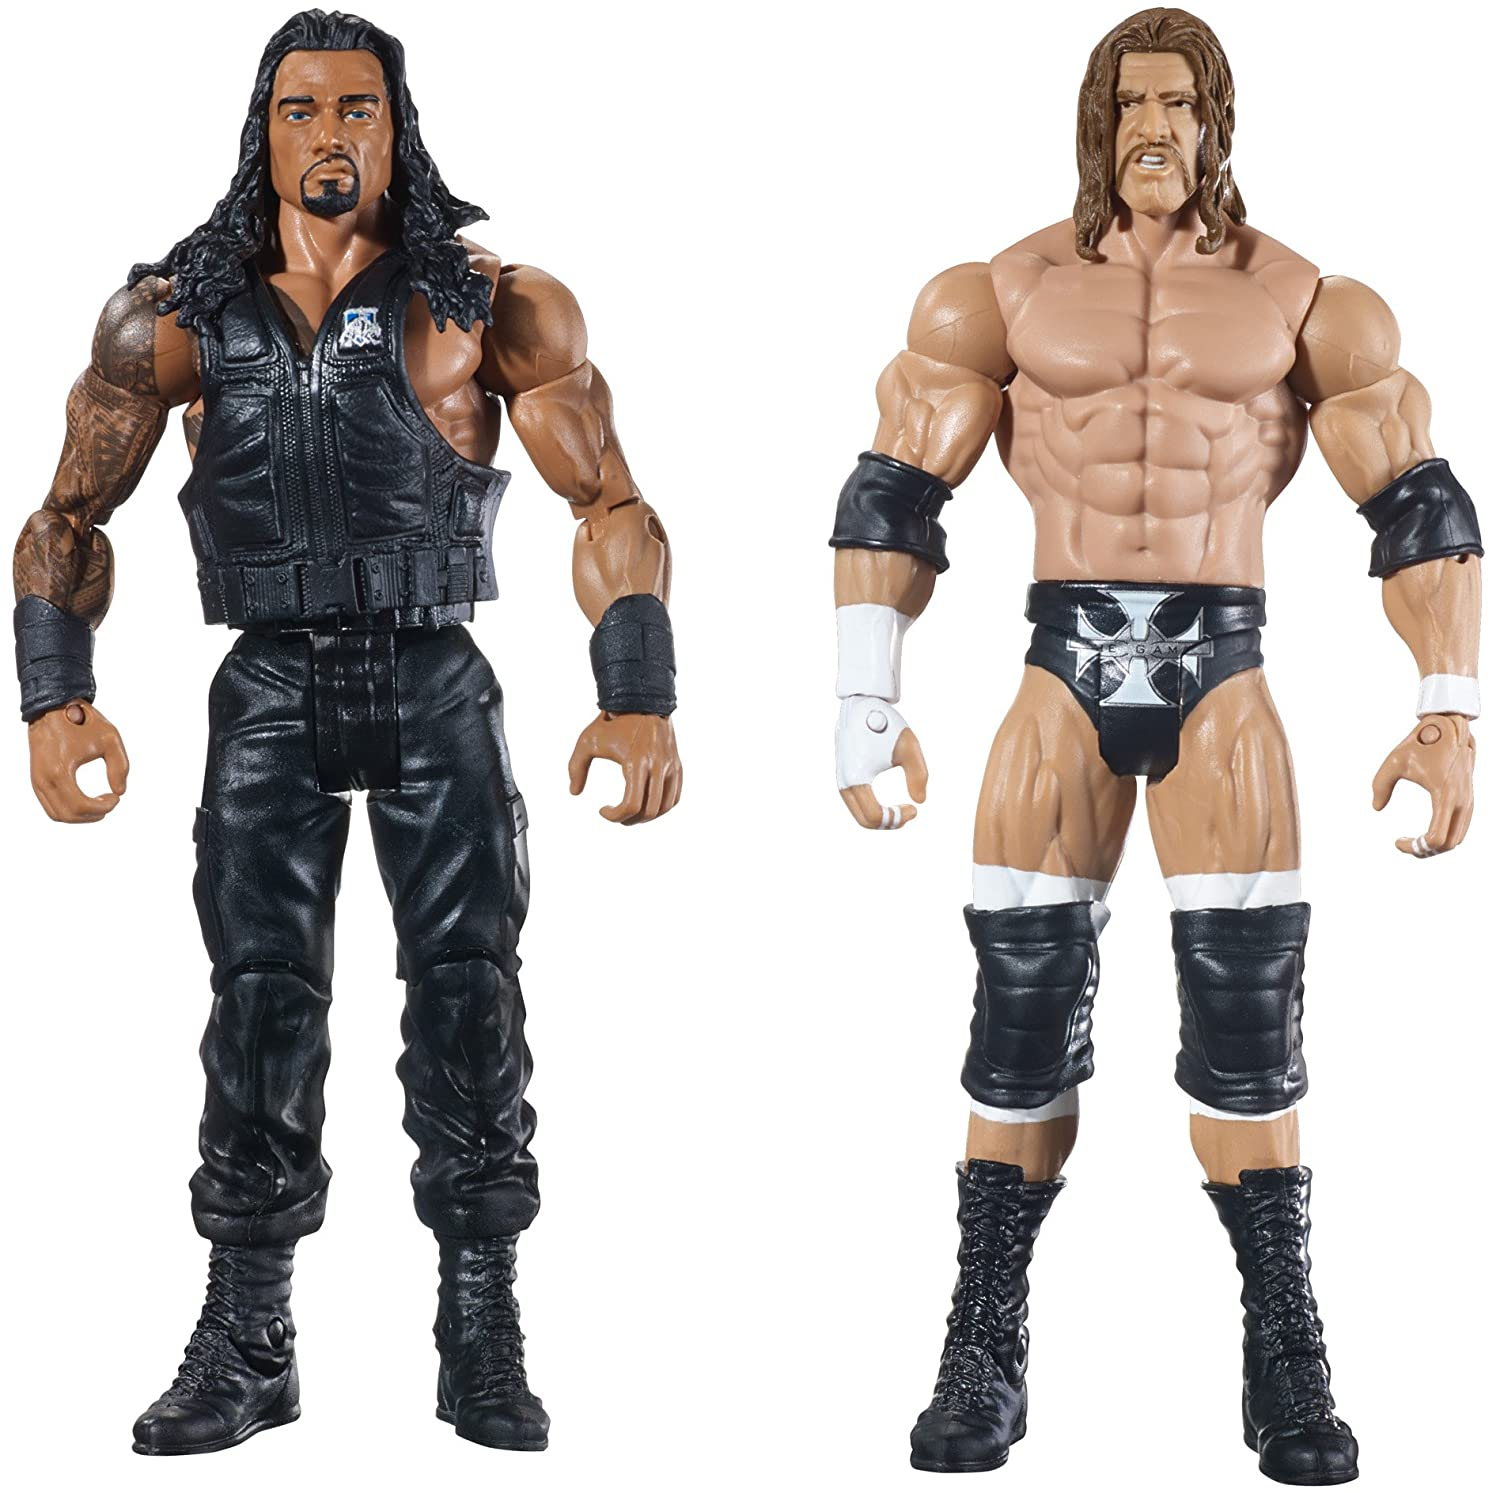 amazoncom wwe wrestlemania 31 roman reigns vs triple h figure 2 pack toys games - Triple H Halloween Costume